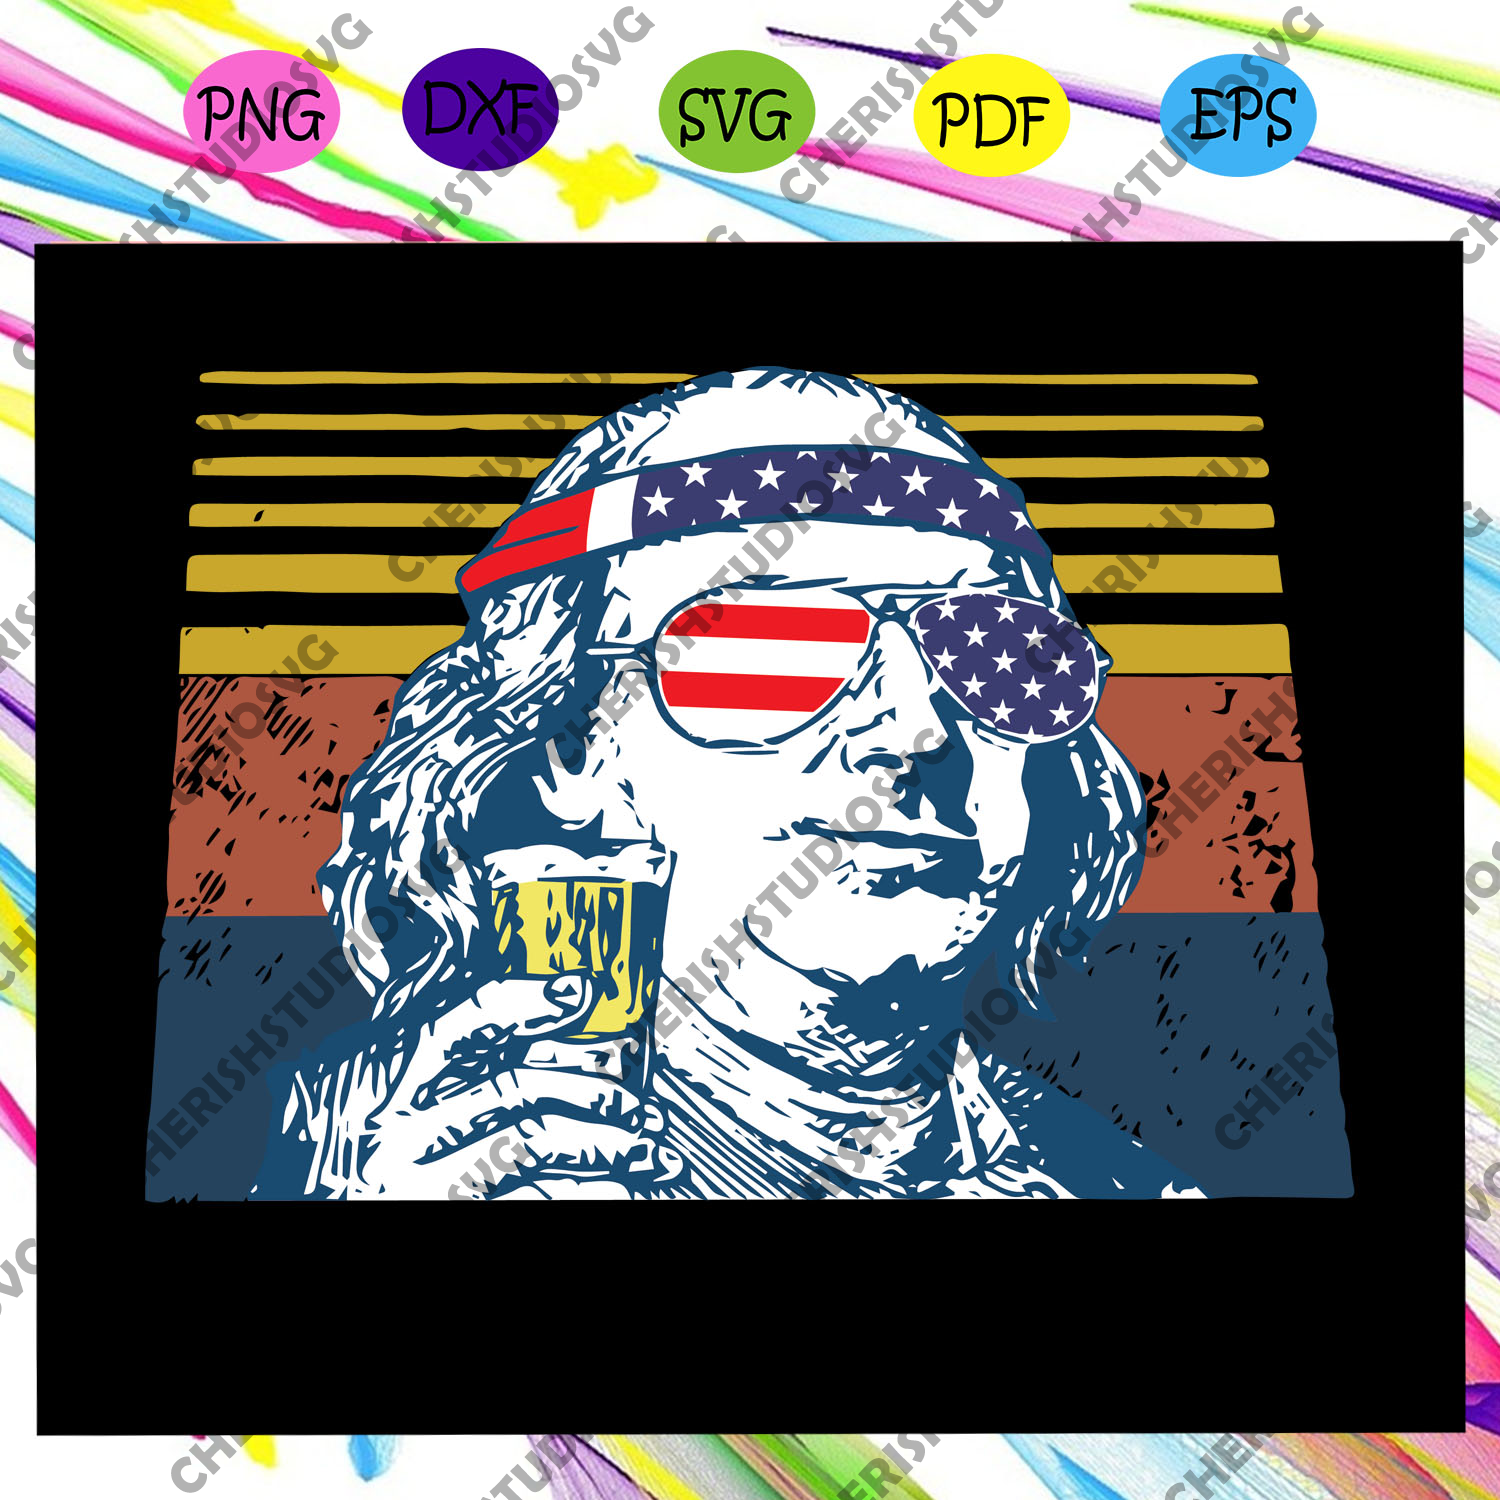 Ben Drakin Svg, Ben Drankin 4th Of July Patriotic Svg, American Svg, 4th Of July Svg, Fourth Of July Svg, Patriotic American Svg, Merican Svg, Independence Day Svg, Files For Silhouette, Files For Cricut, SVG, DXF, EPS, PNG, Instant Download